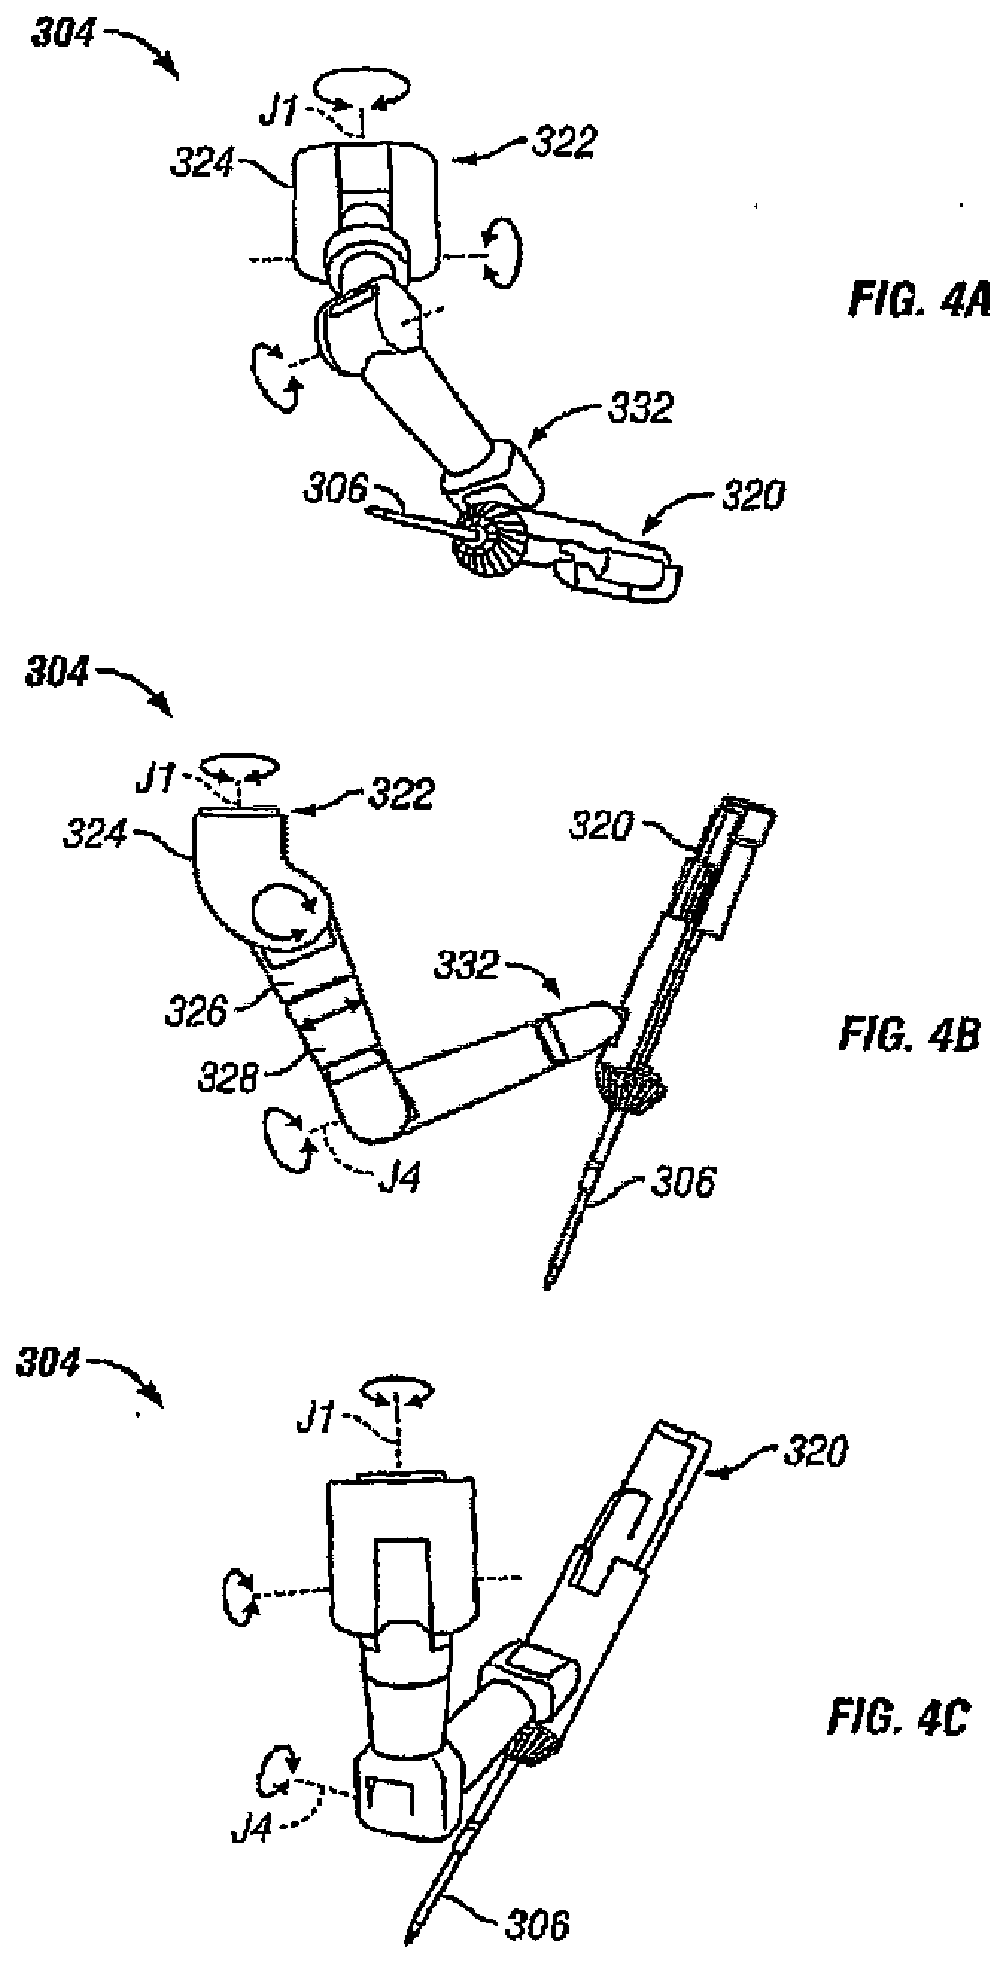 Tape Measure With Utensil Holder And Tape Brake Patent Application